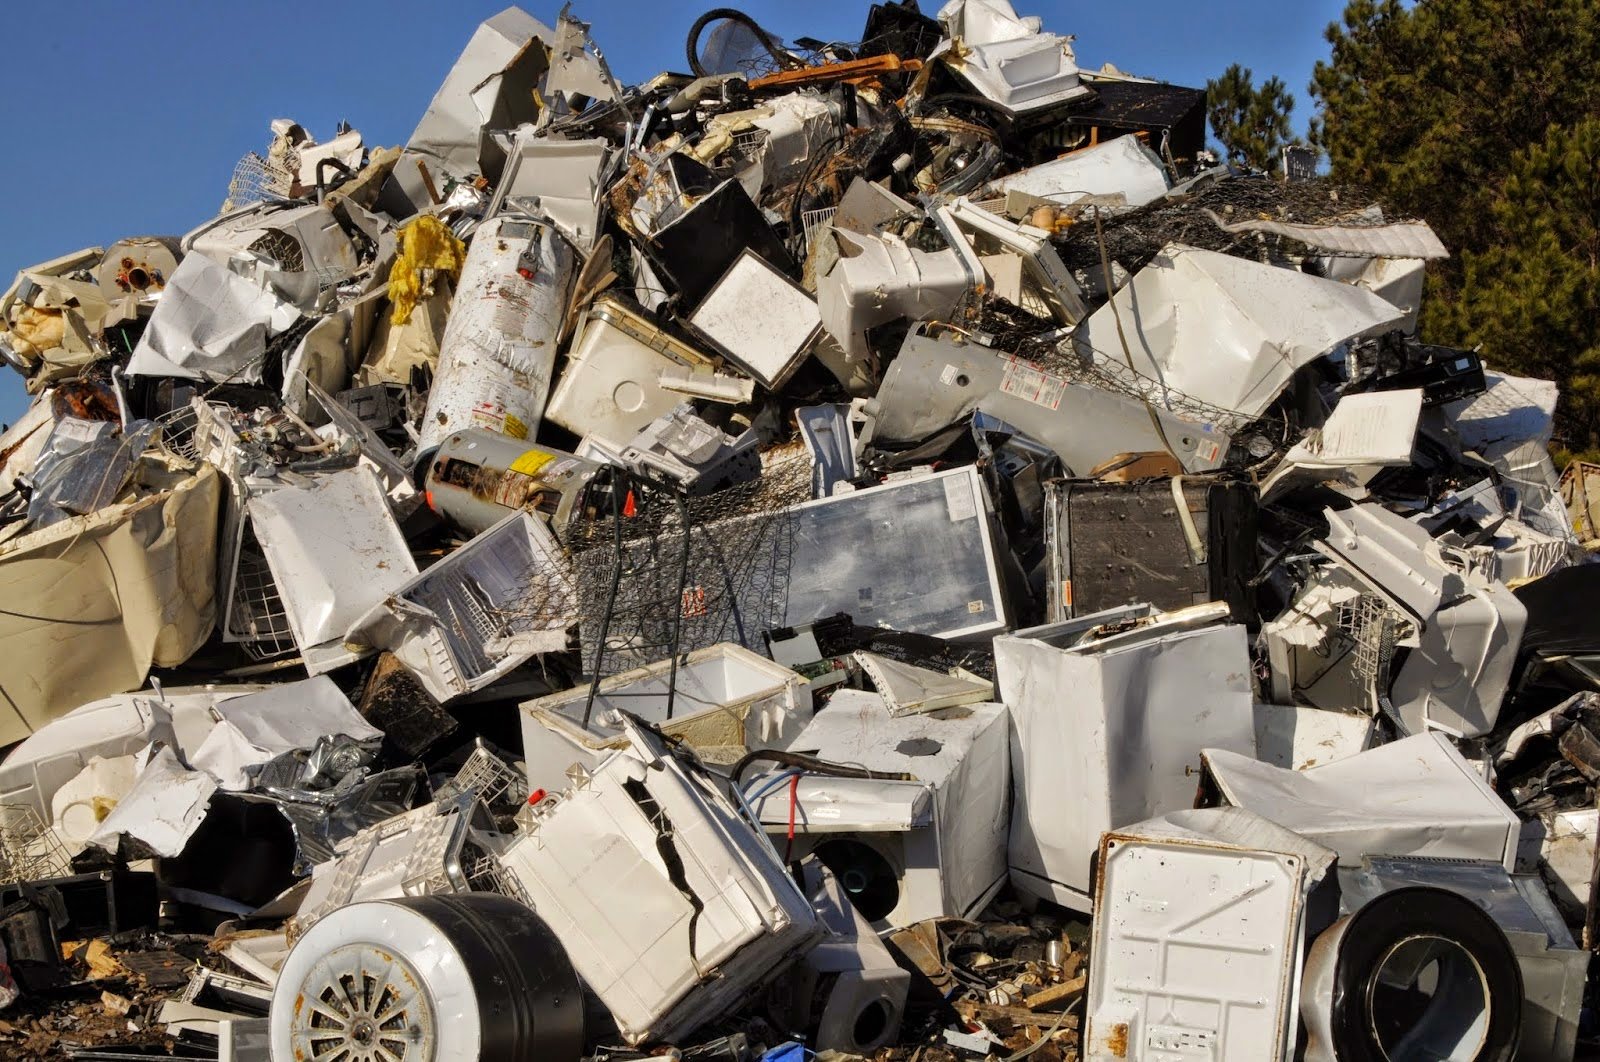 Recycle and dispose of Appliances at Wilson Scrap metal Recycling